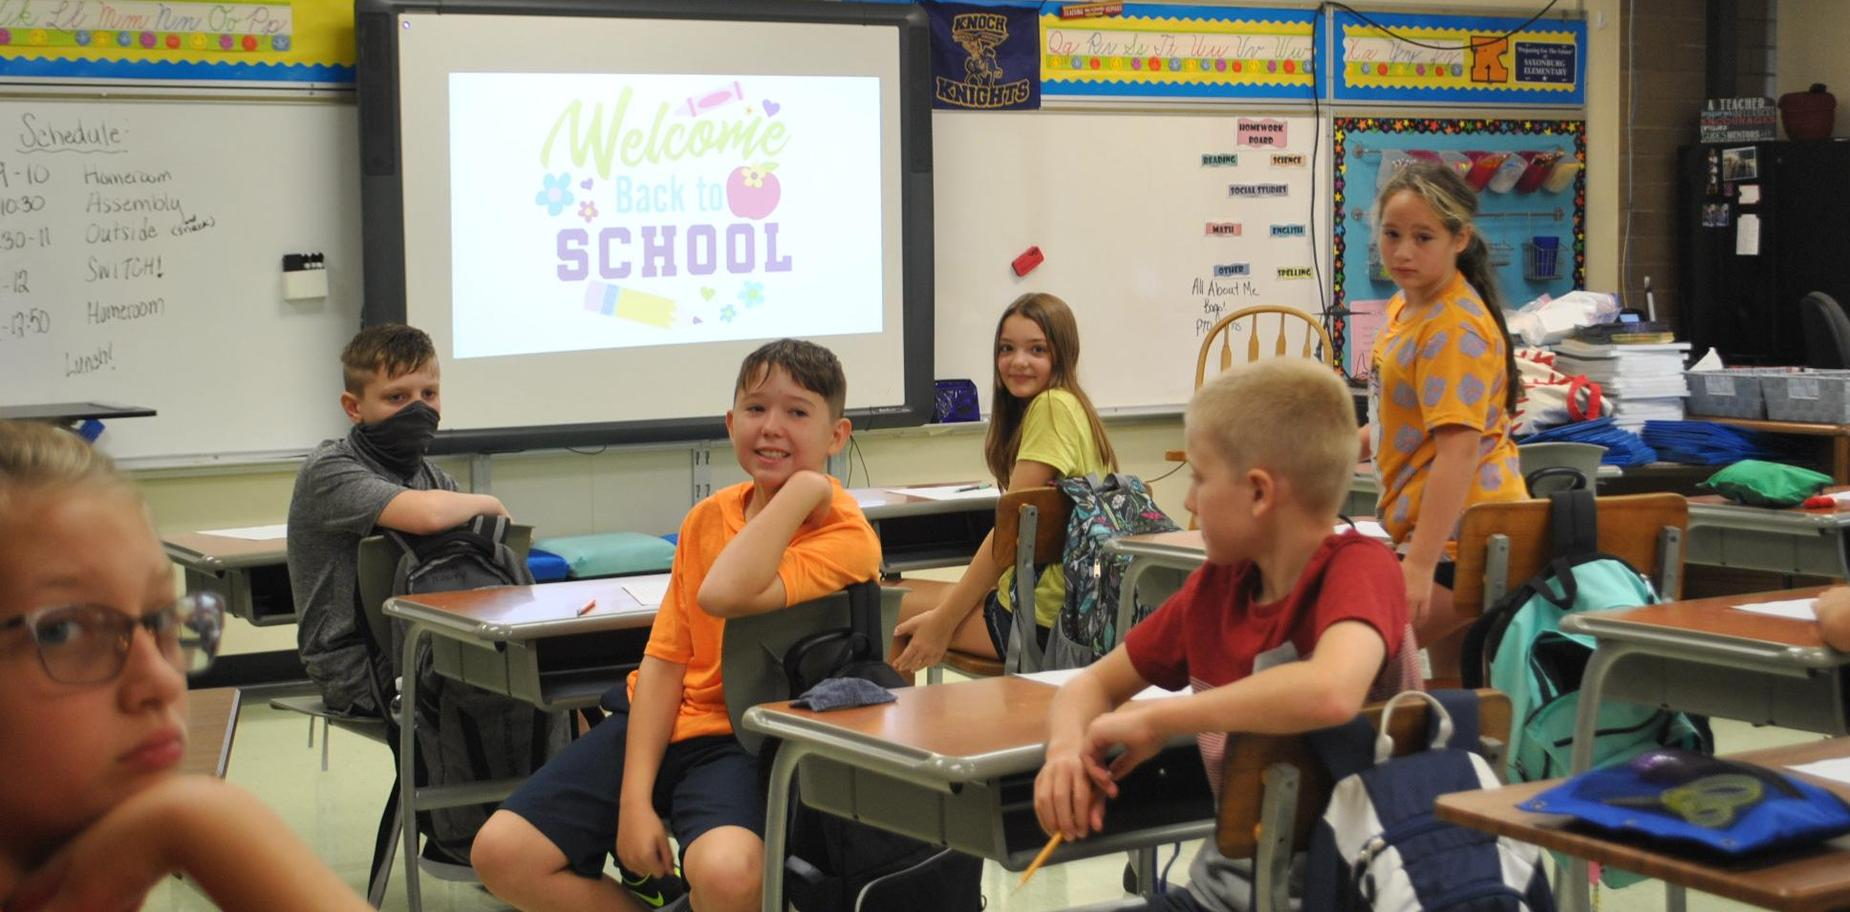 Students in classroom on first day